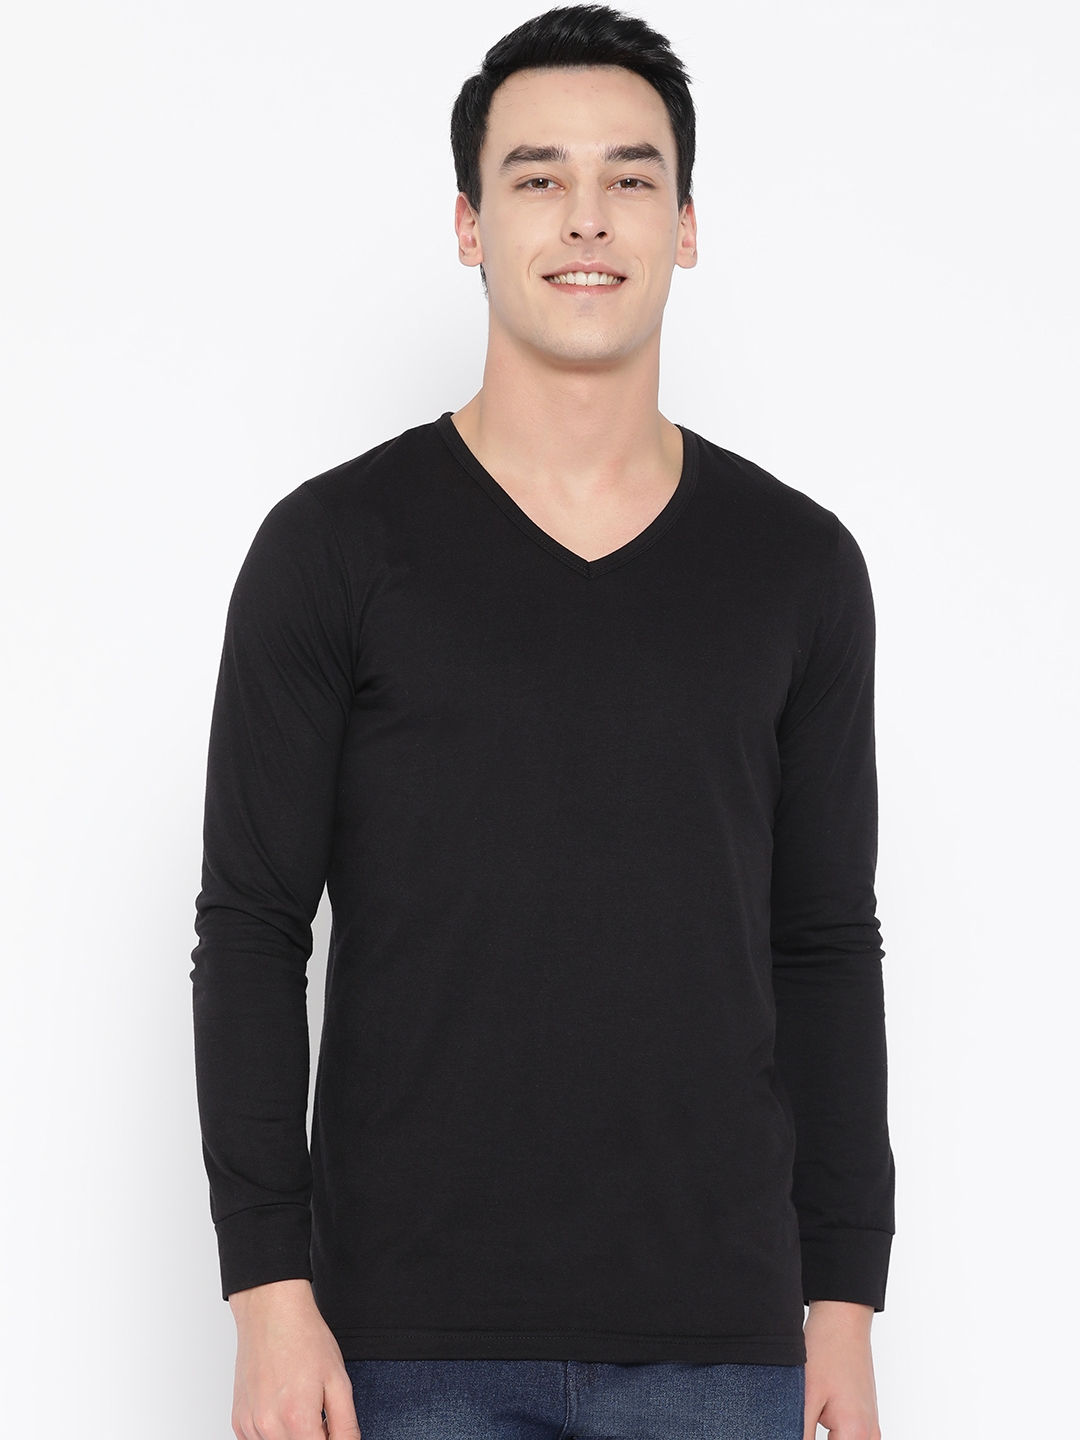 Unisopent Designs Men Black Solid V Neck T shirt